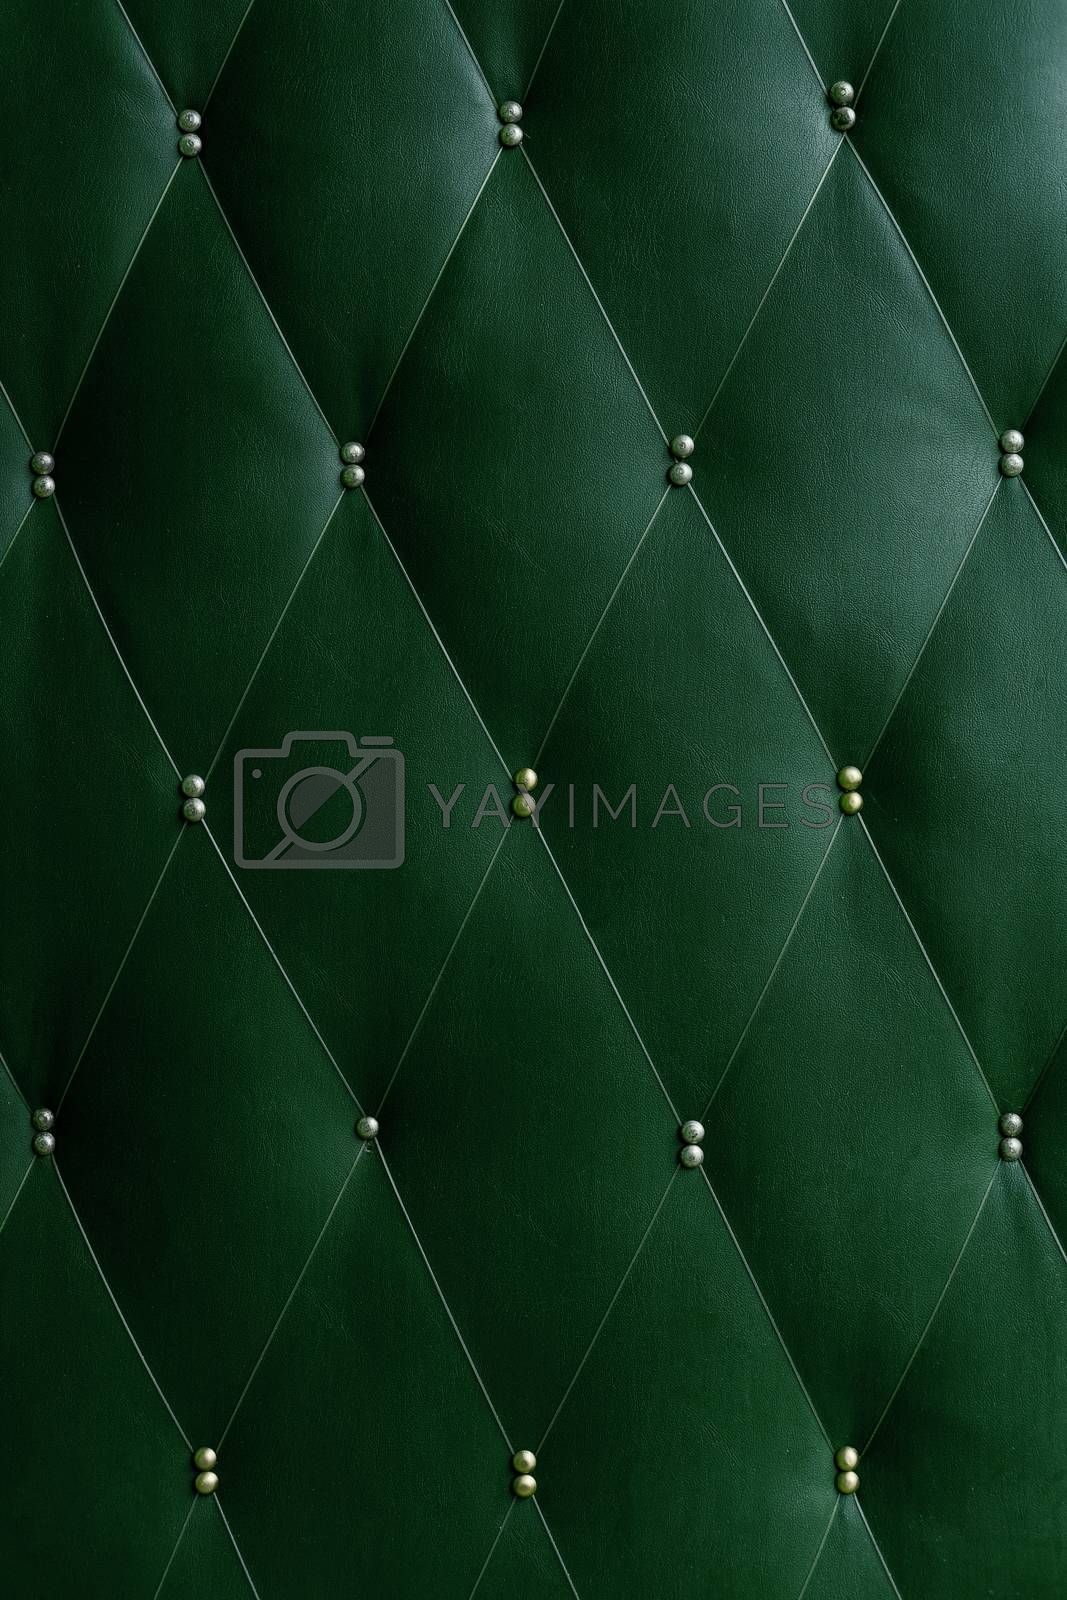 Soviet soft green dermantine front door with a banner of fishing line and nails - full frame background and texture.